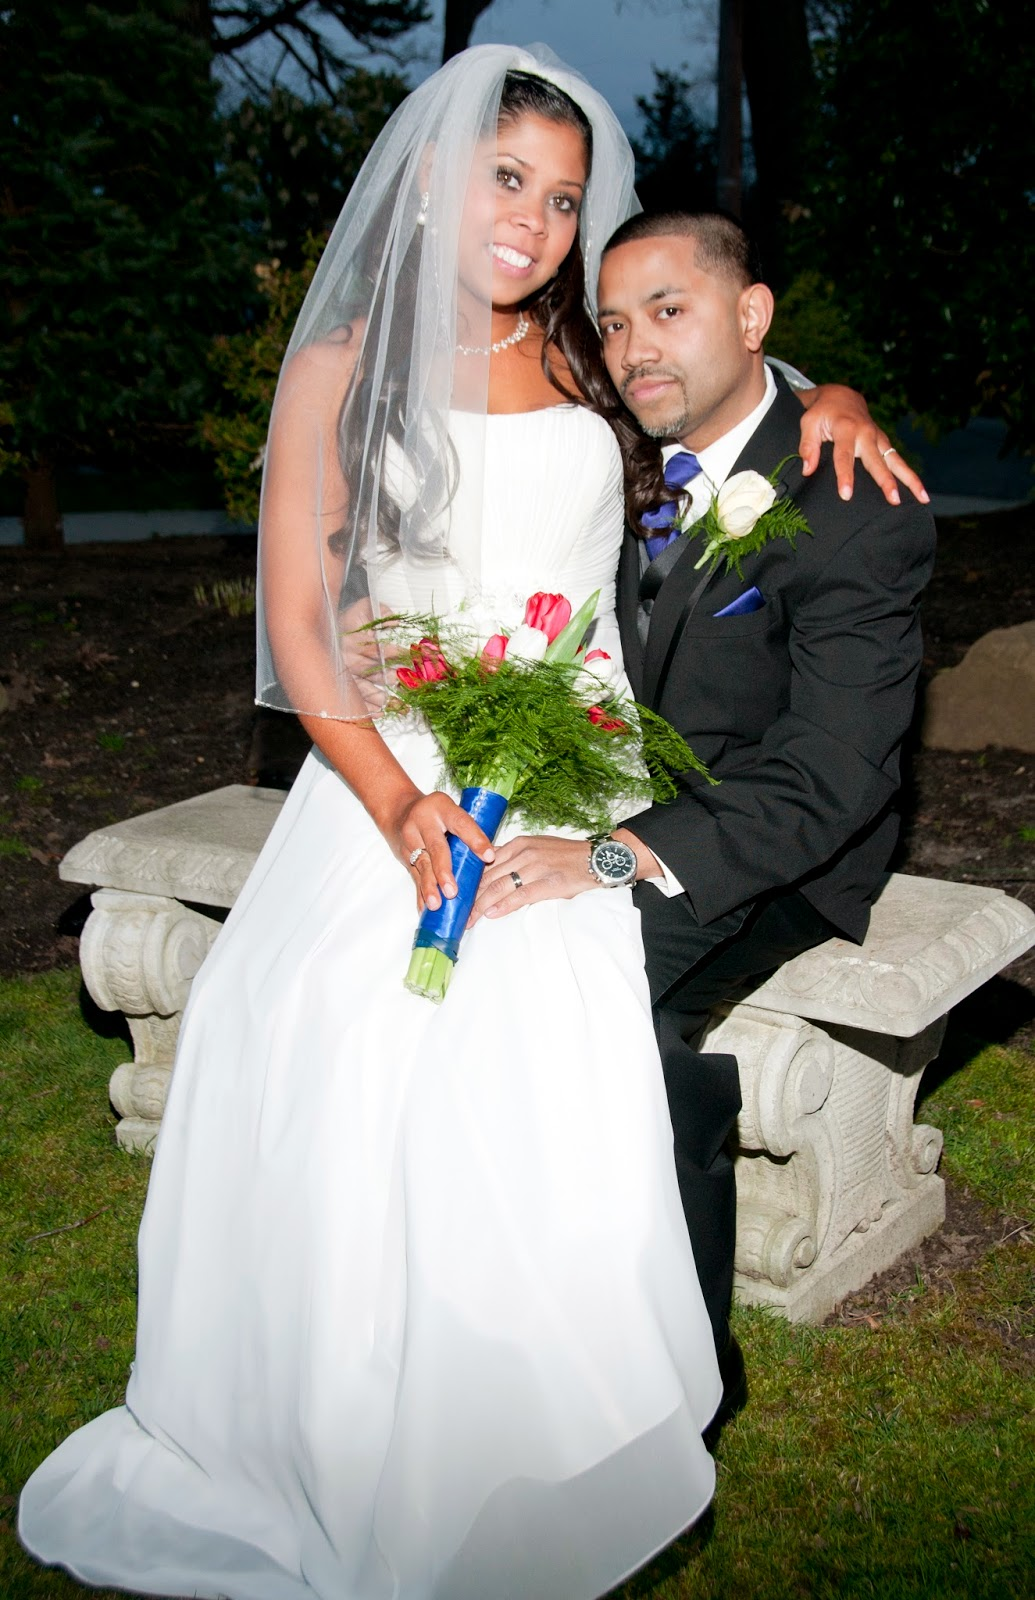 High Definition Professional Wedding Photographer: Tips To